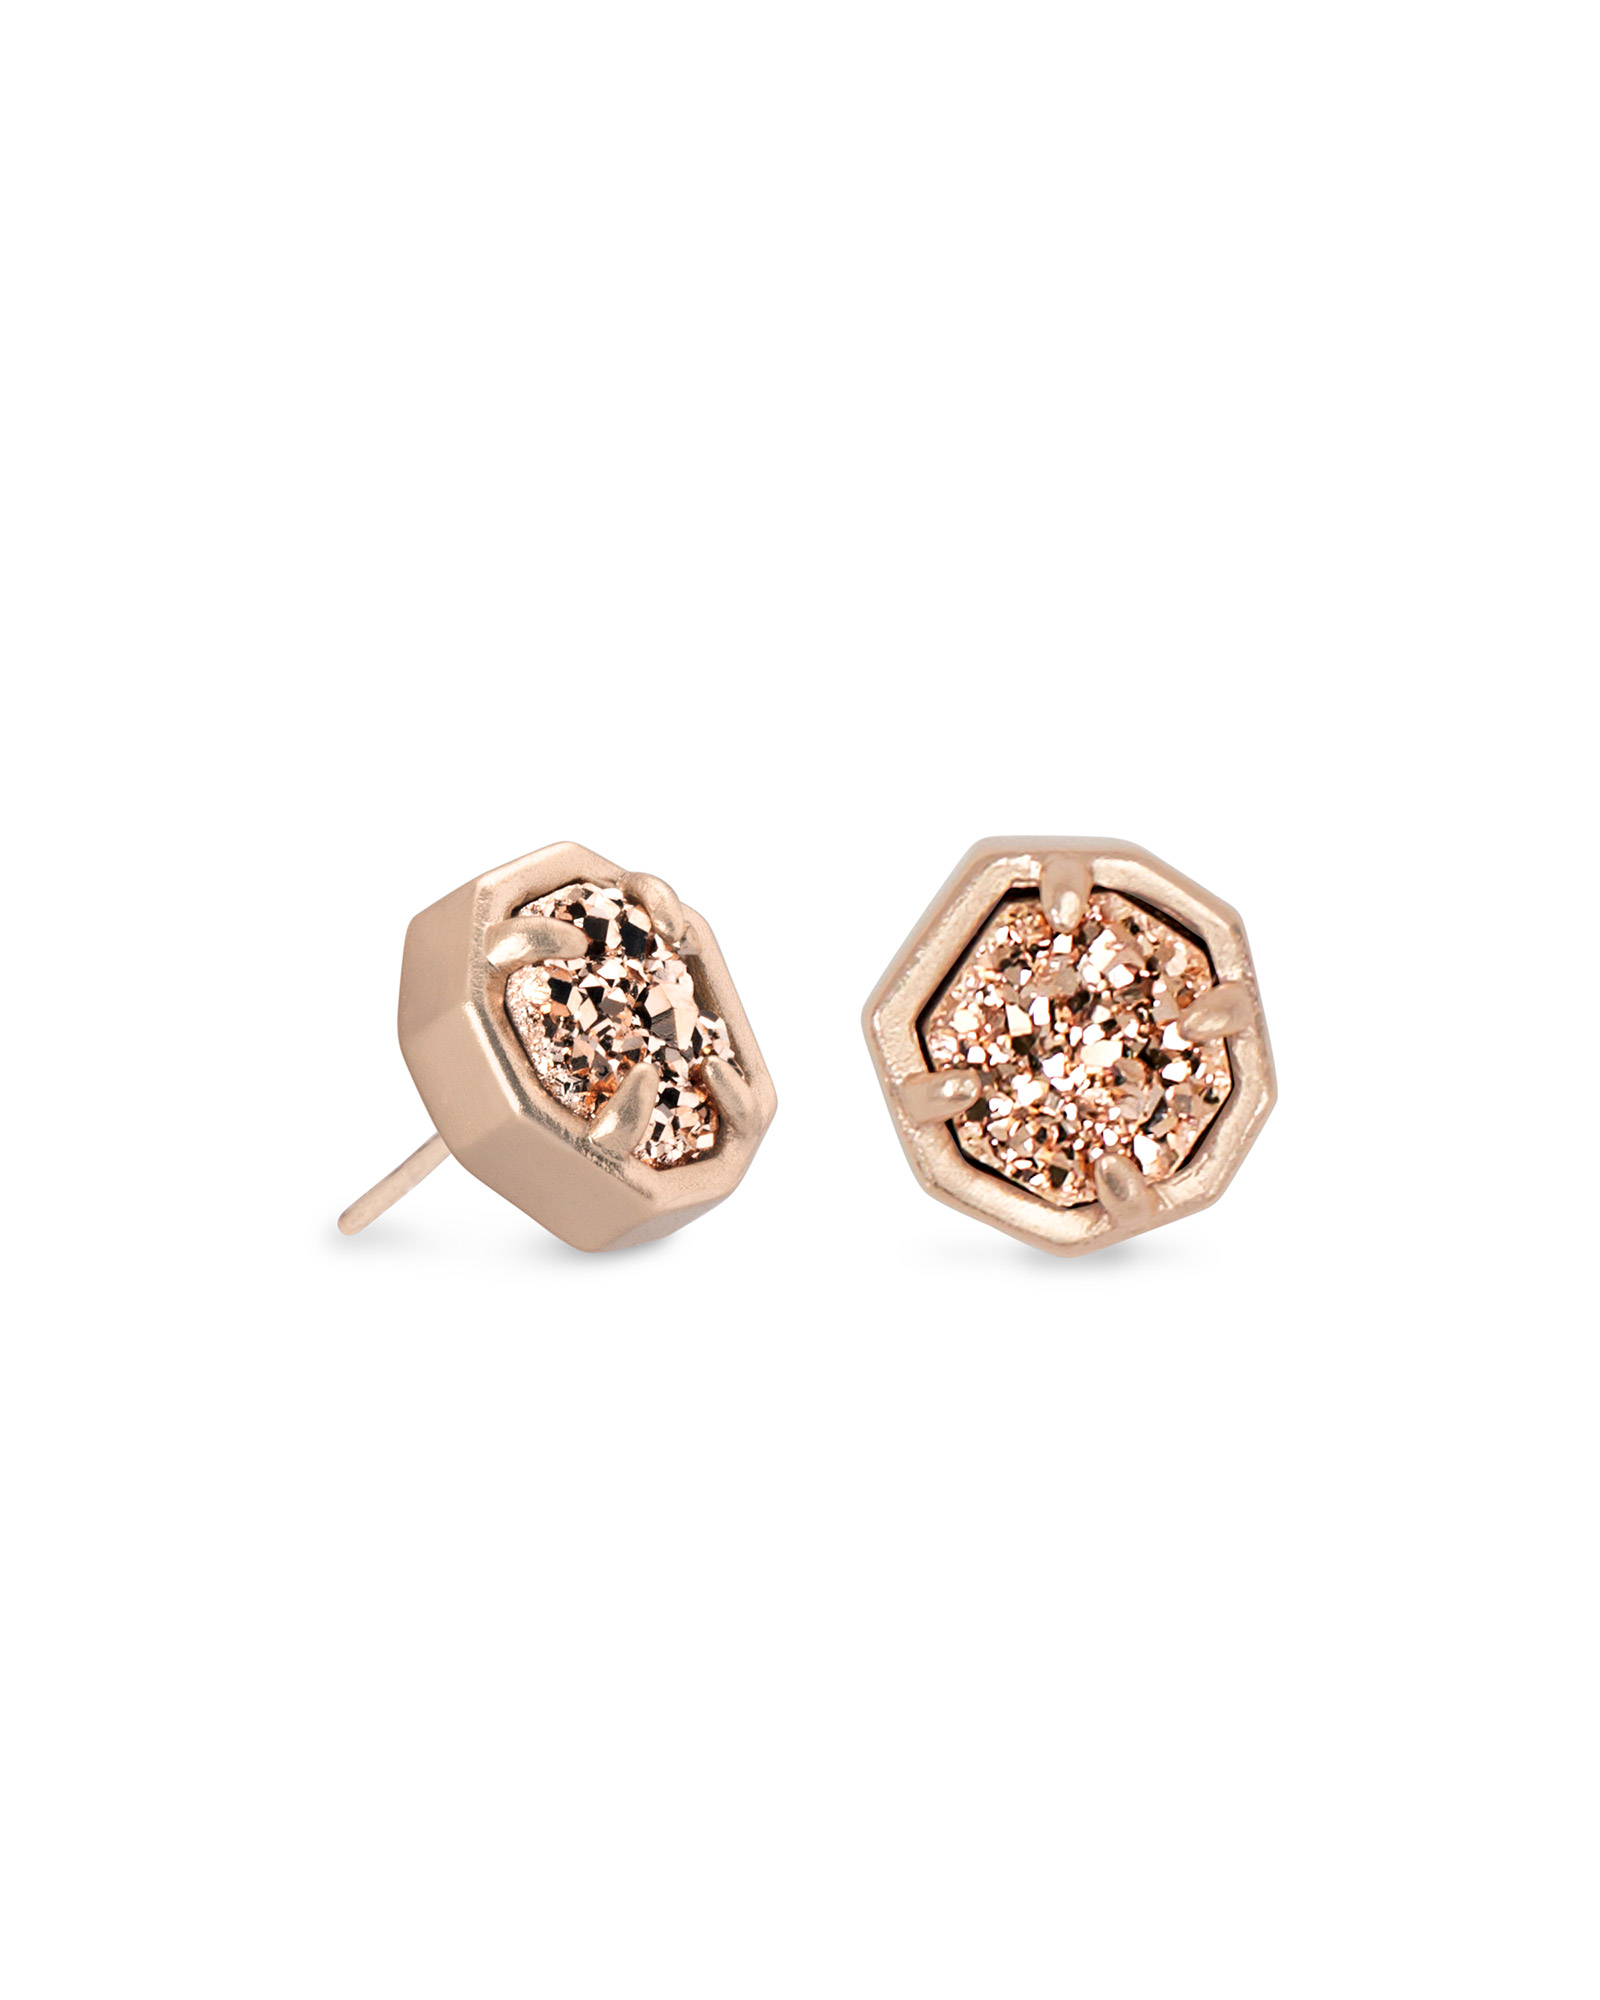 Nola Rose Gold Stud Earrings in Rose Gold Drusy